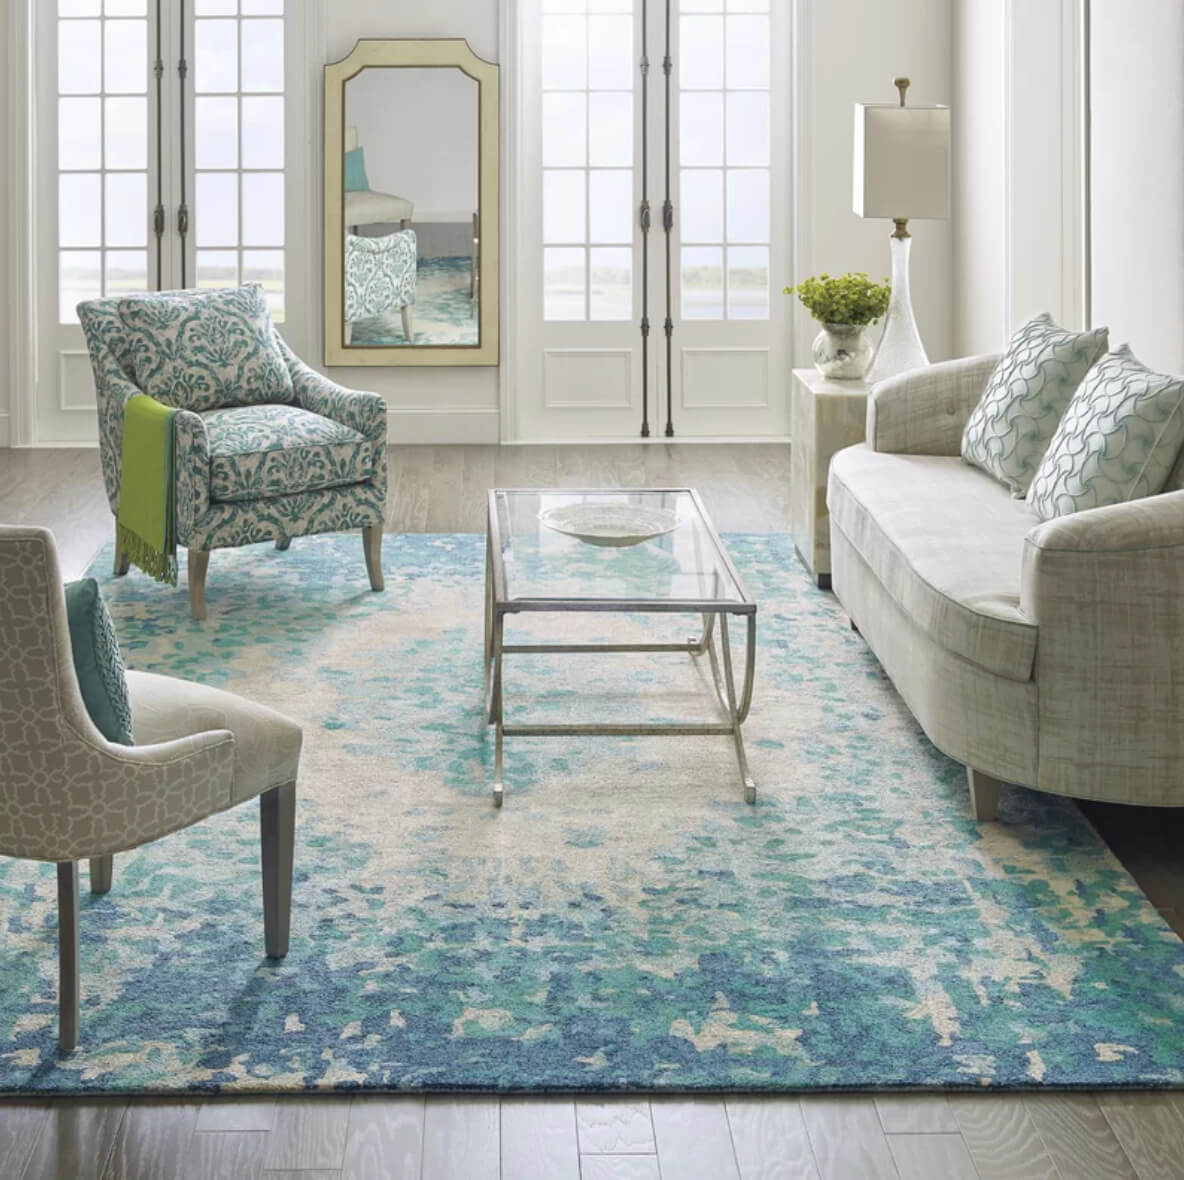 12 living room rug ideas that will change everythingthe looking glass rug adds romance to a living room with an impressionistic floral pattern image perigold